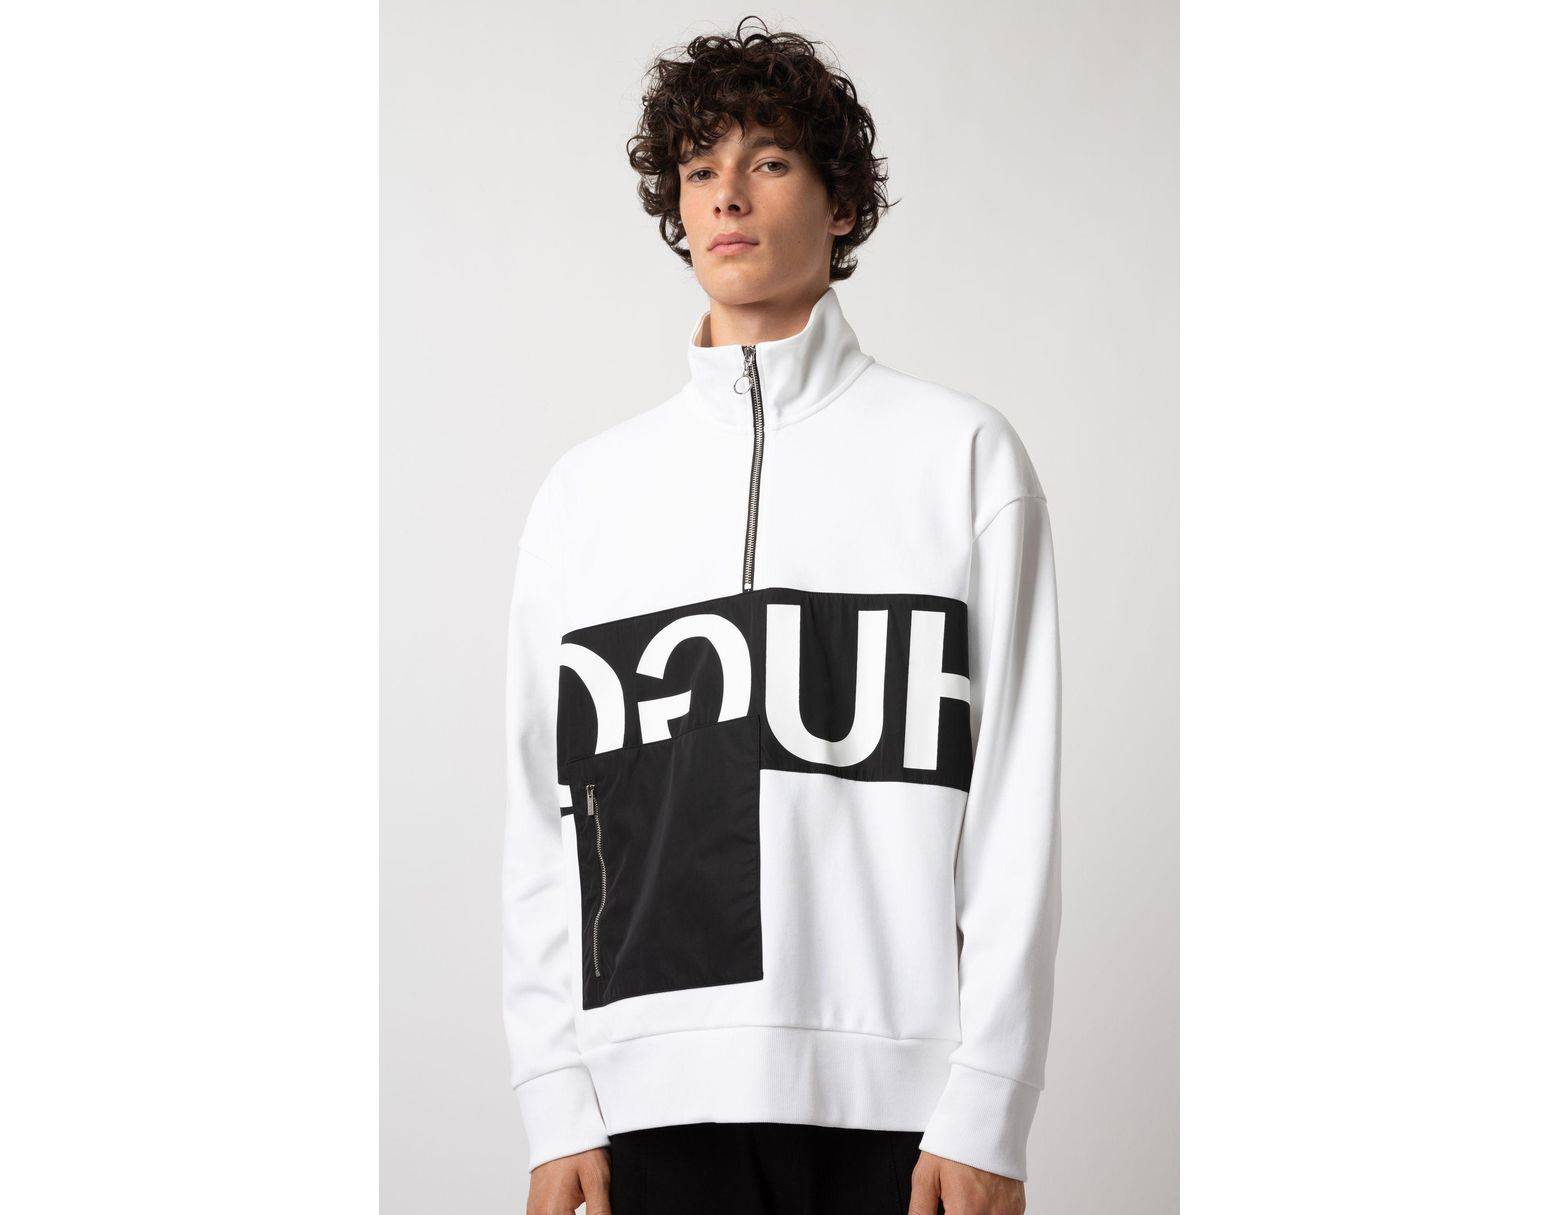 d98f12c4 HUGO Oversized-fit Sweatshirt With Reverse Logo And Patch Pocket in White  for Men - Lyst